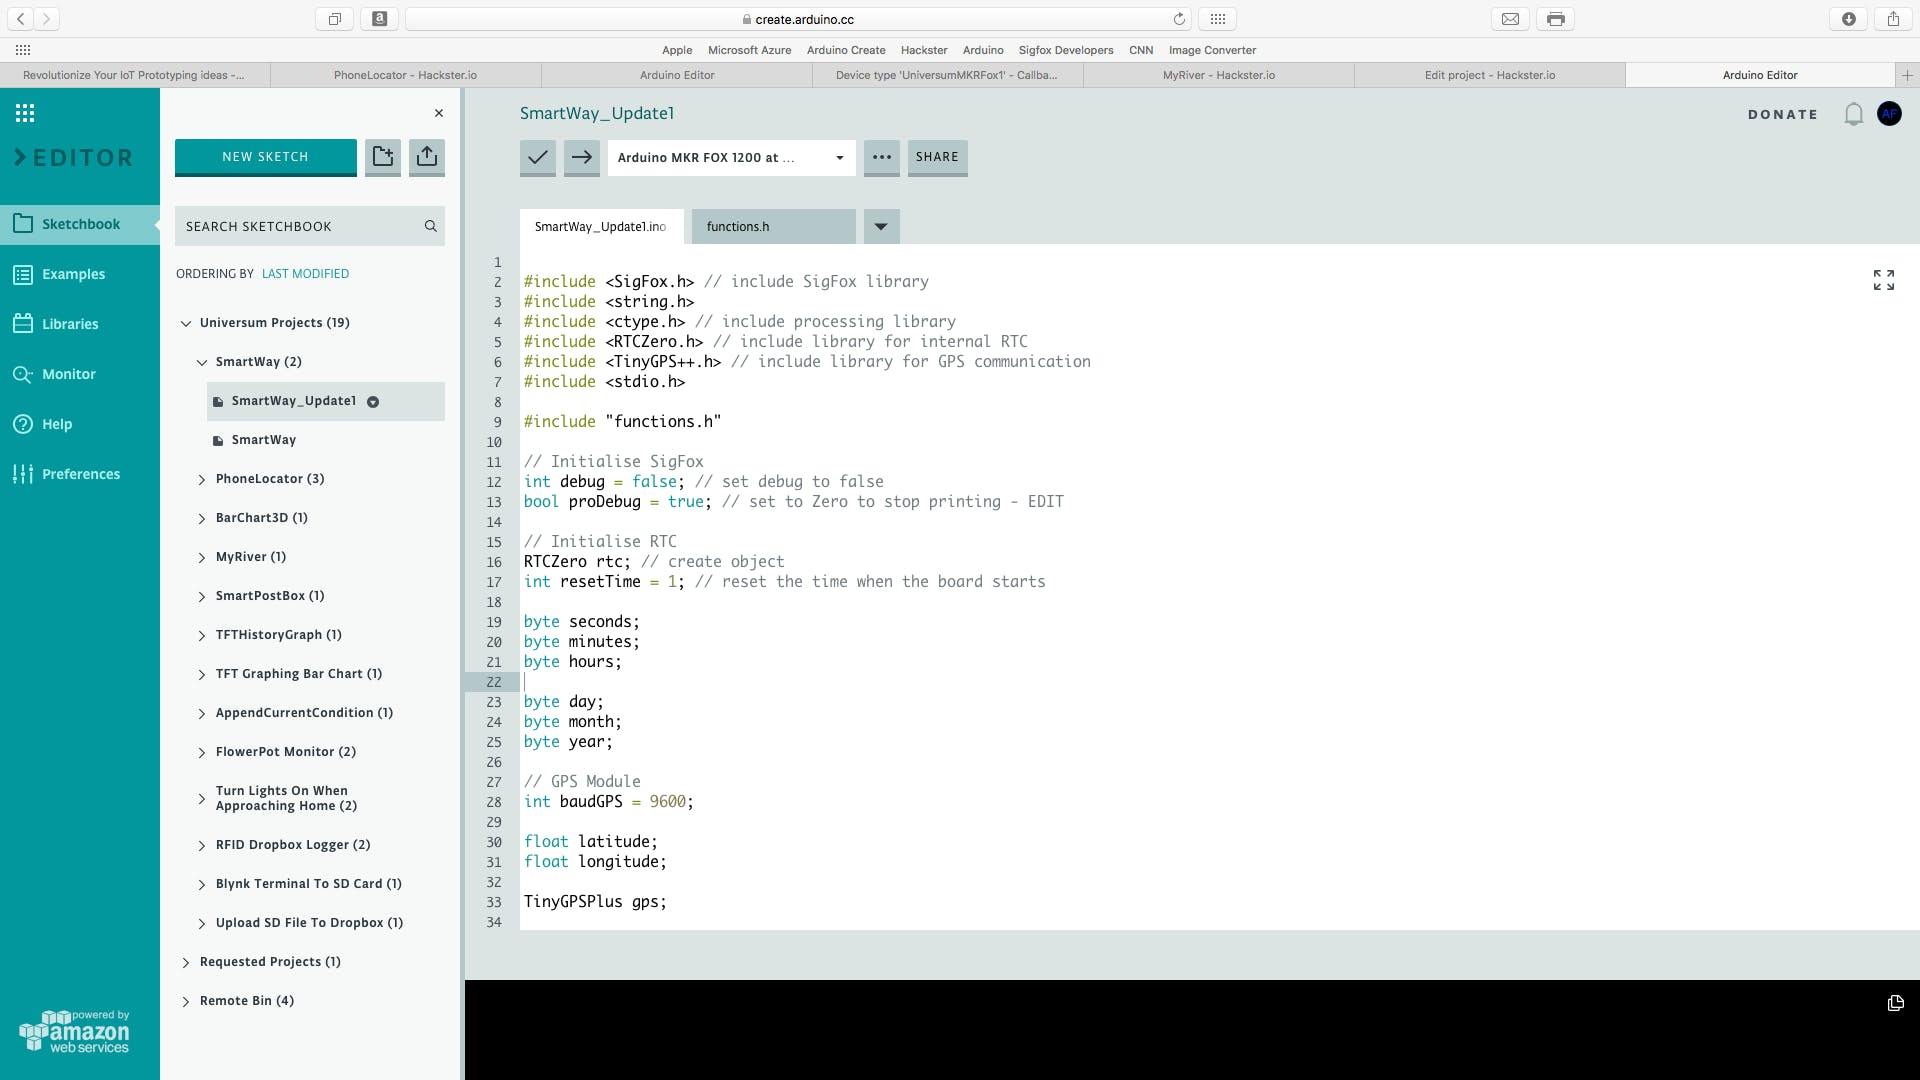 The first step is to open the project's code